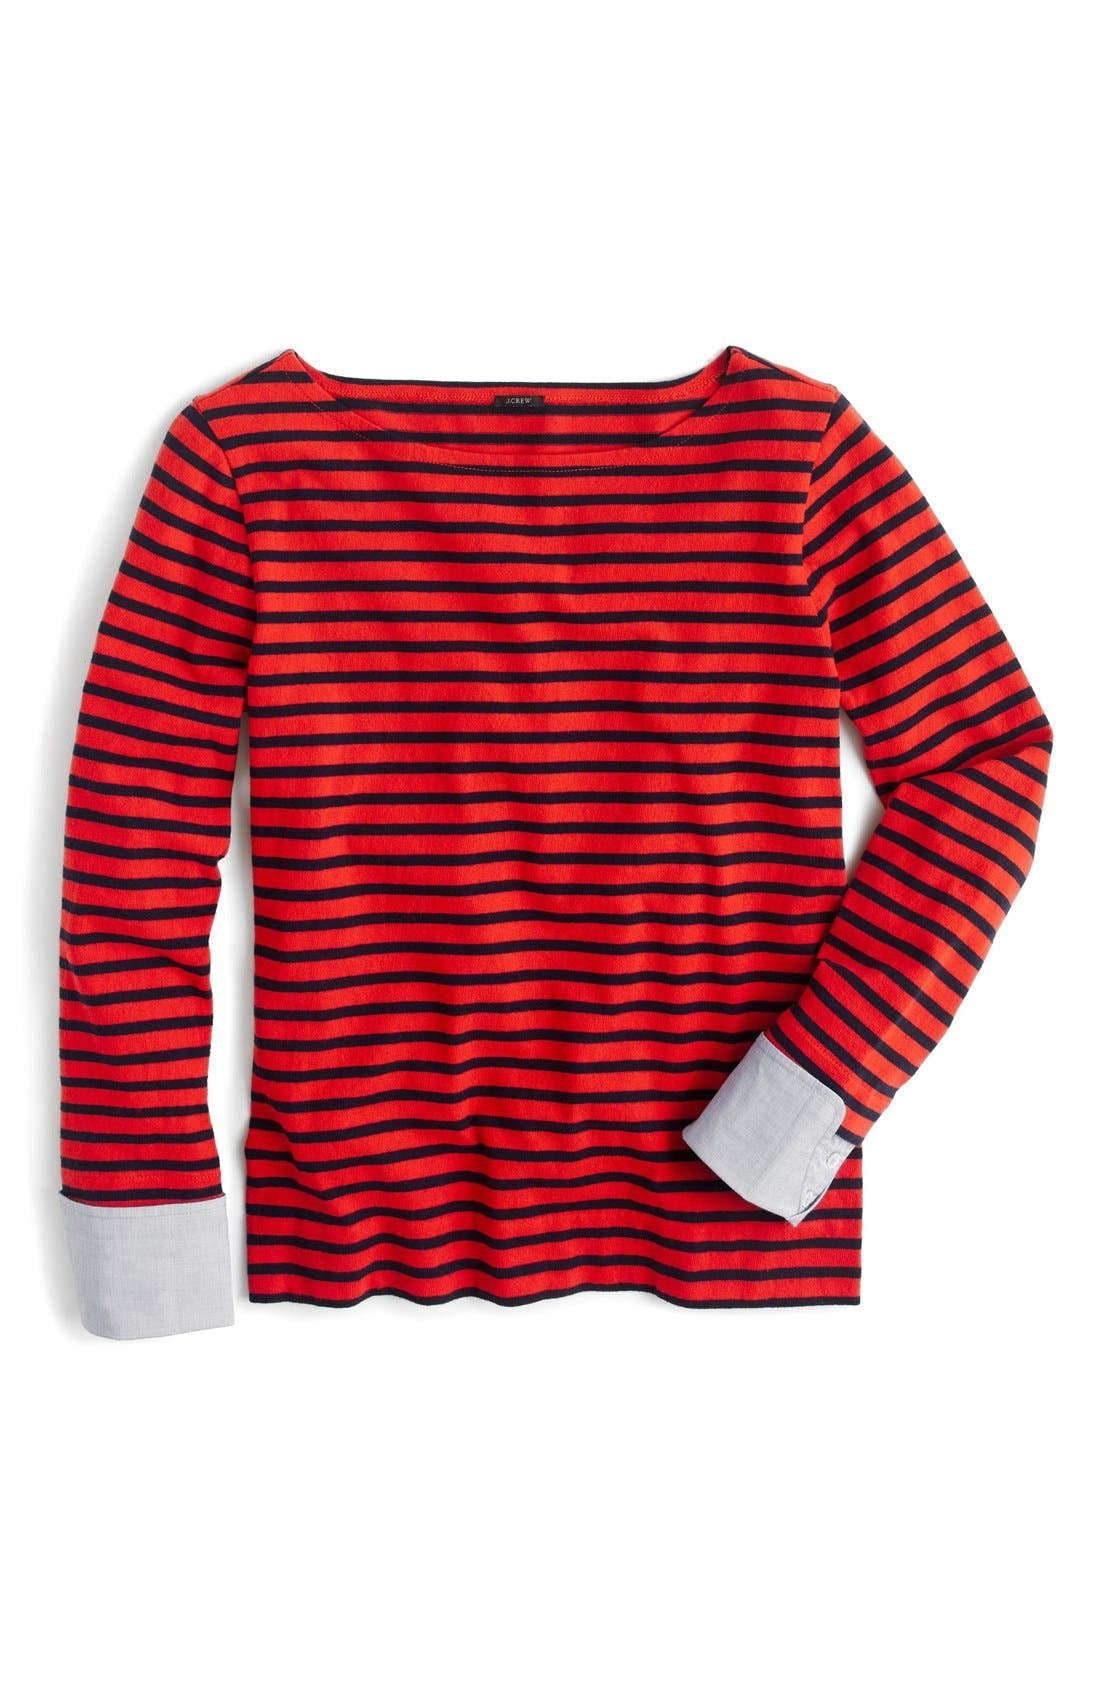 Alternate Image 1 Selected - J.Crew Built-In Cuff Stripe Tee